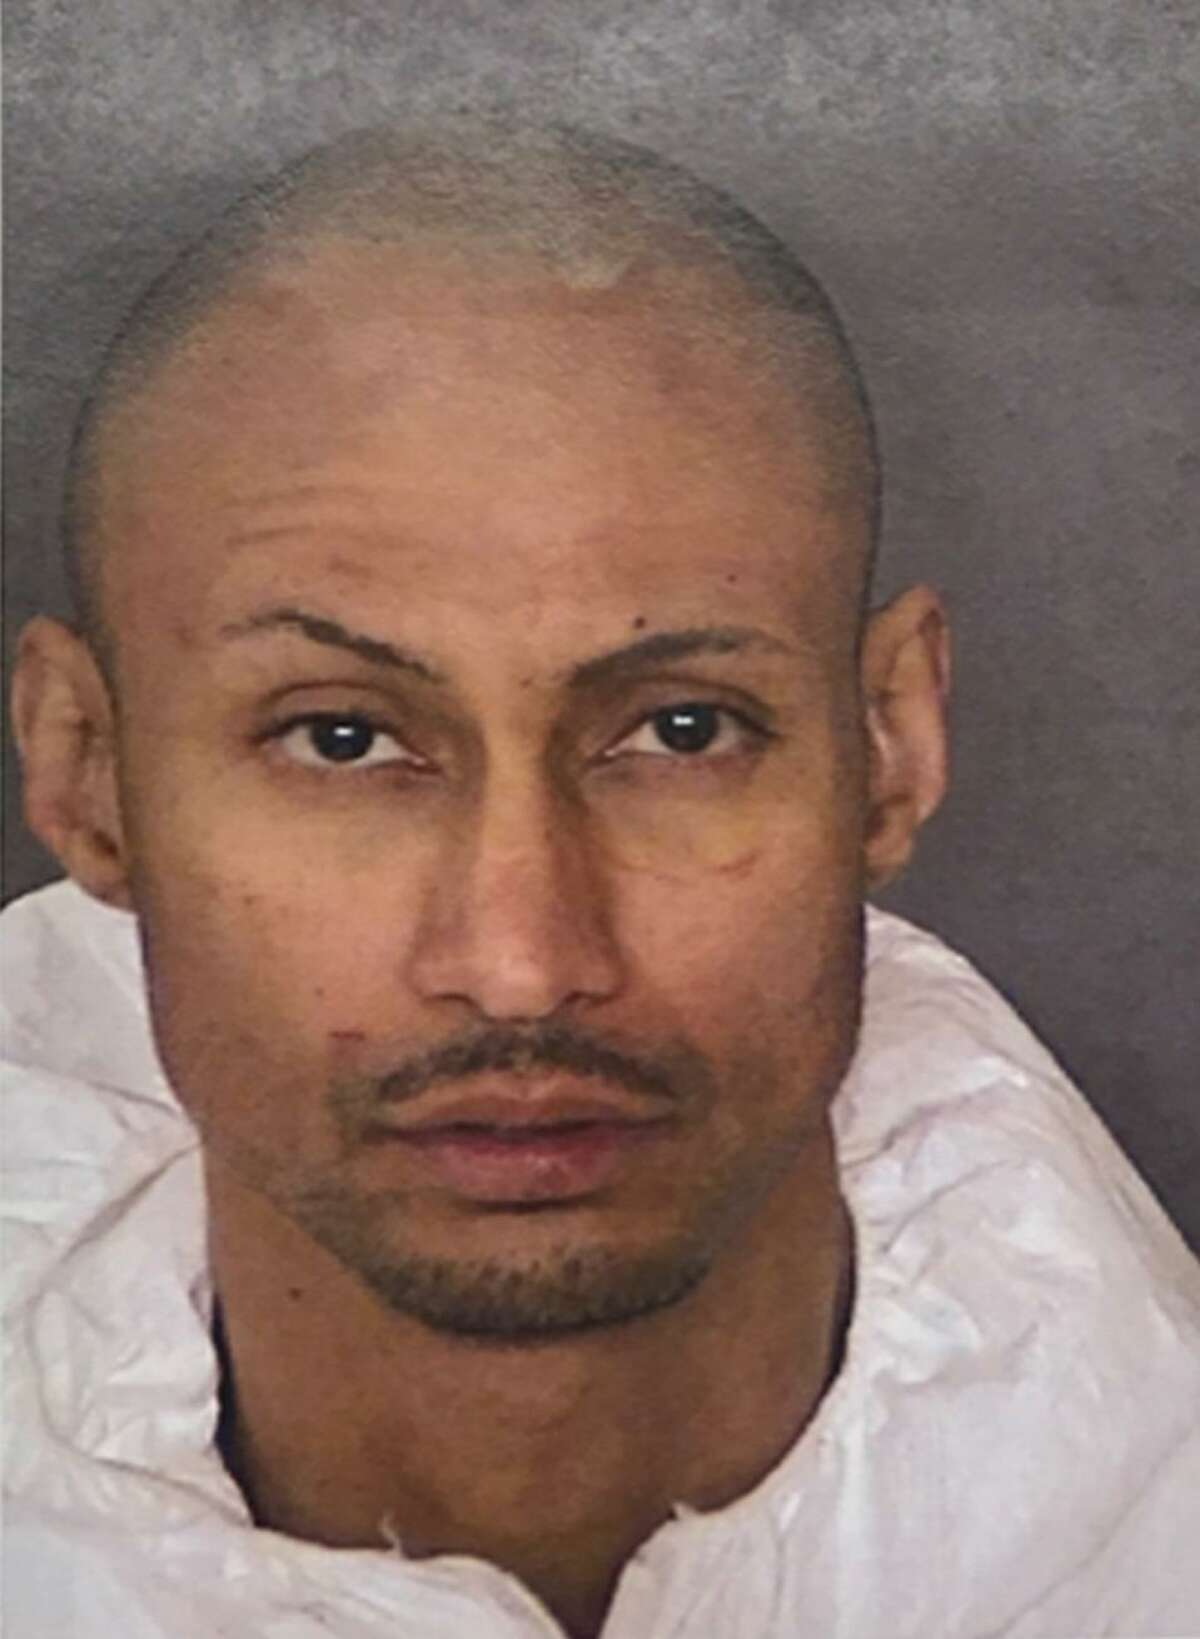 Inmate Luis Antonio Arroyo escaped from the Bexar County Jail on March 2, 2018. On Friday, he was sentenced to 99 years. He is awaiting trial again for capital murder.